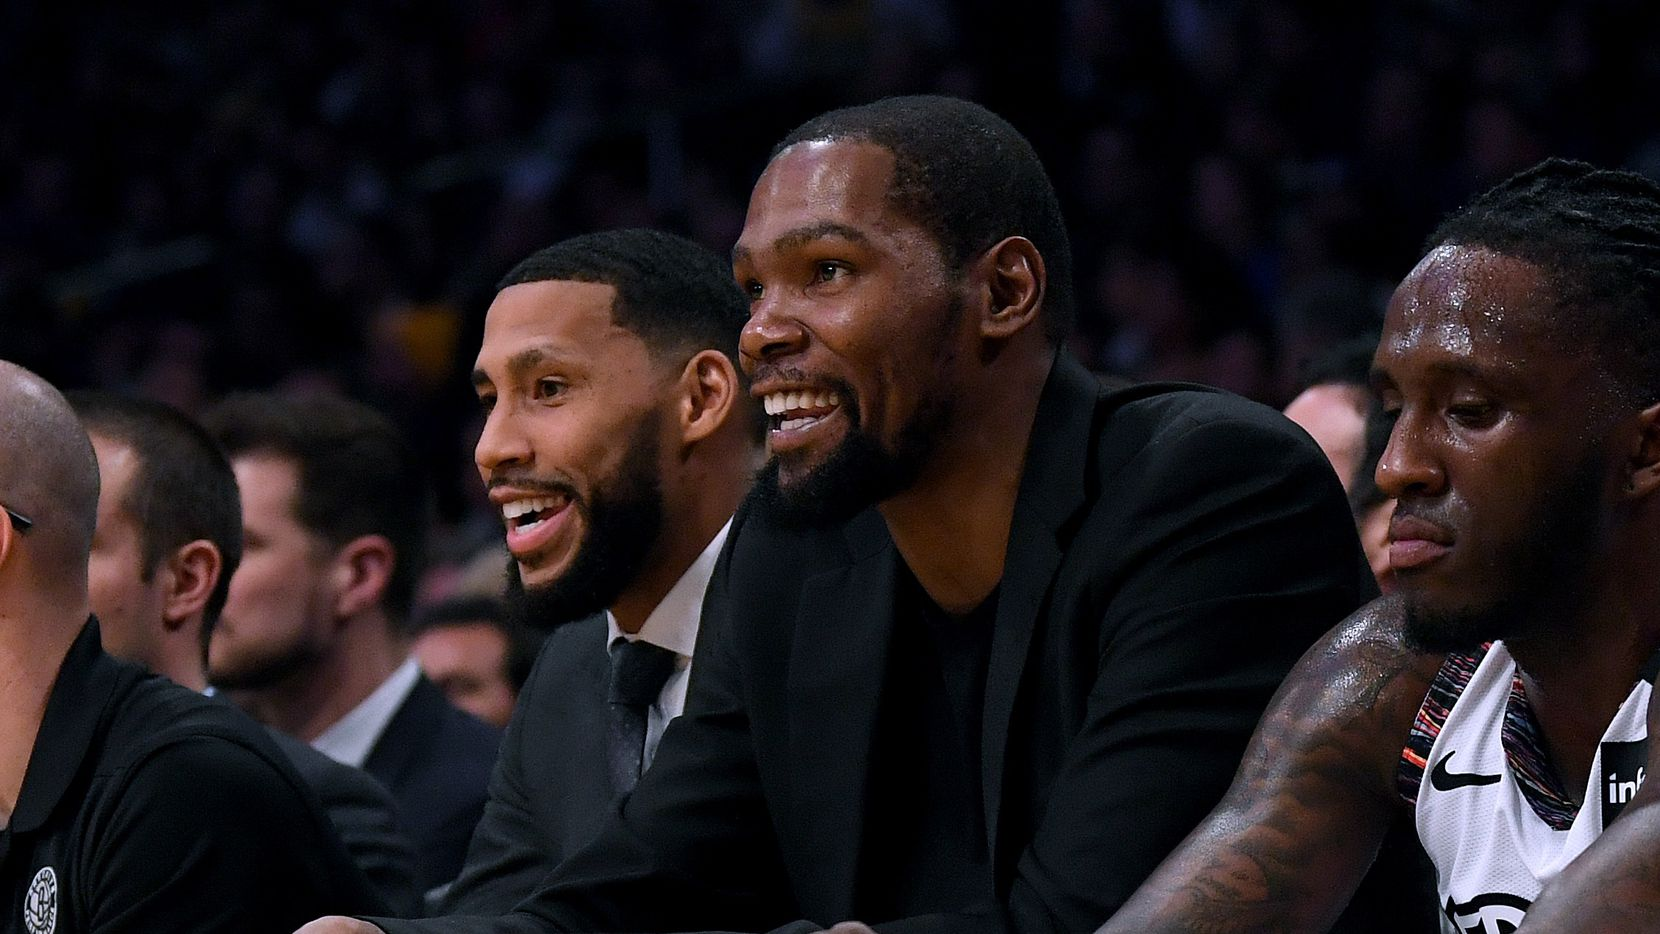 Kevin Durant #7 of the Brooklyn Nets smiles during the first half against the Los Angeles Lakers at Staples Center on March 10, 2020 in Los Angeles, California.